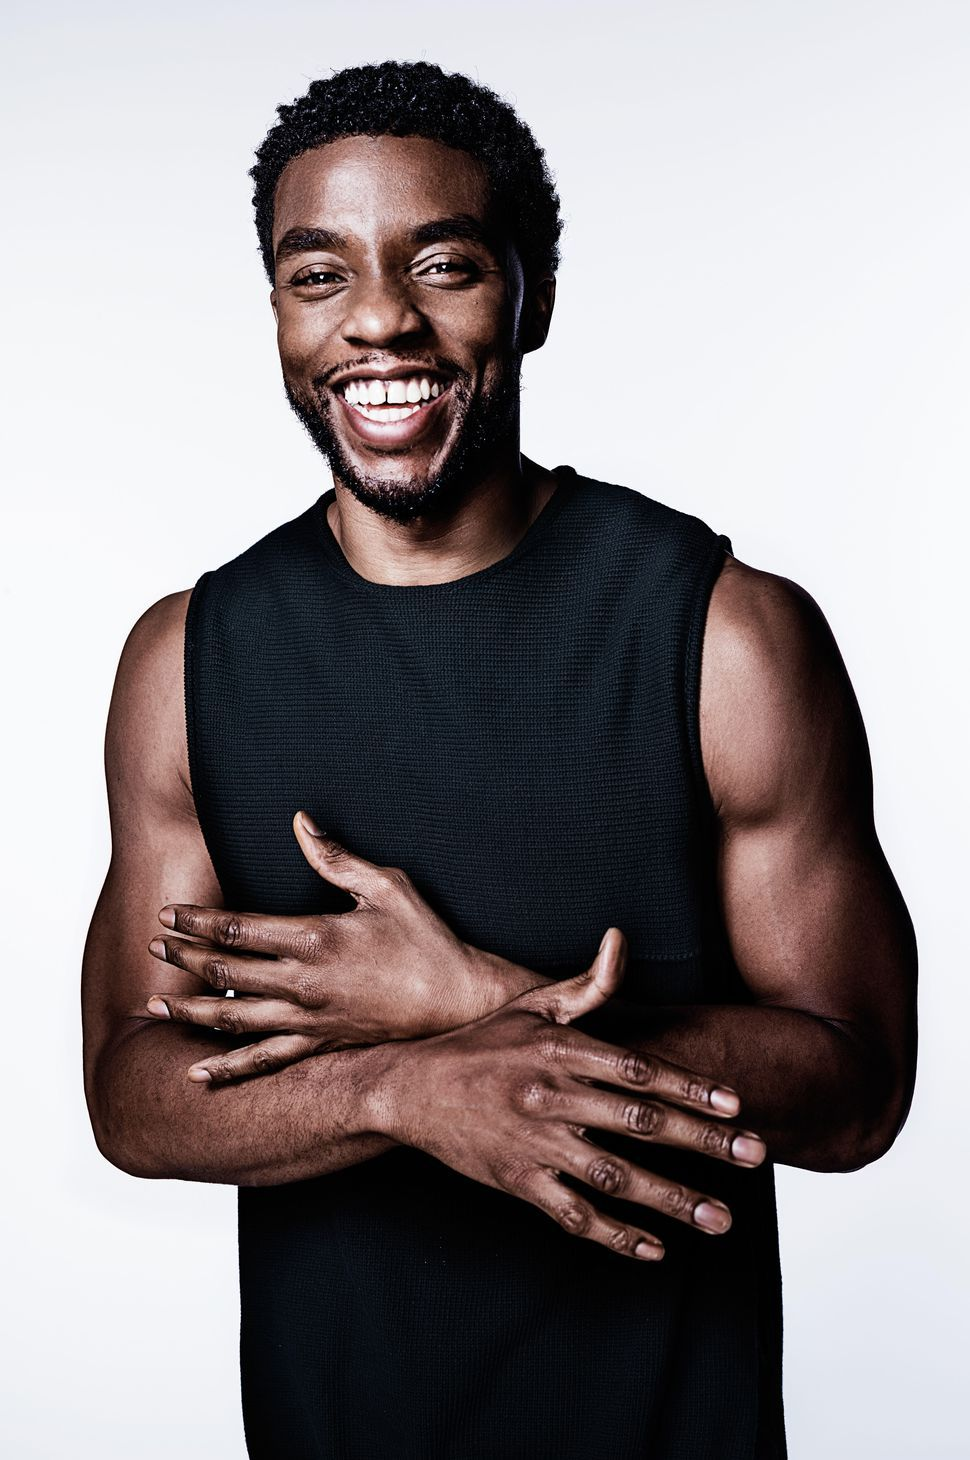 Black Panther Is About How You Use Power Wisely Black Panther Chadwick Boseman Black Panther Marvel Black Panther